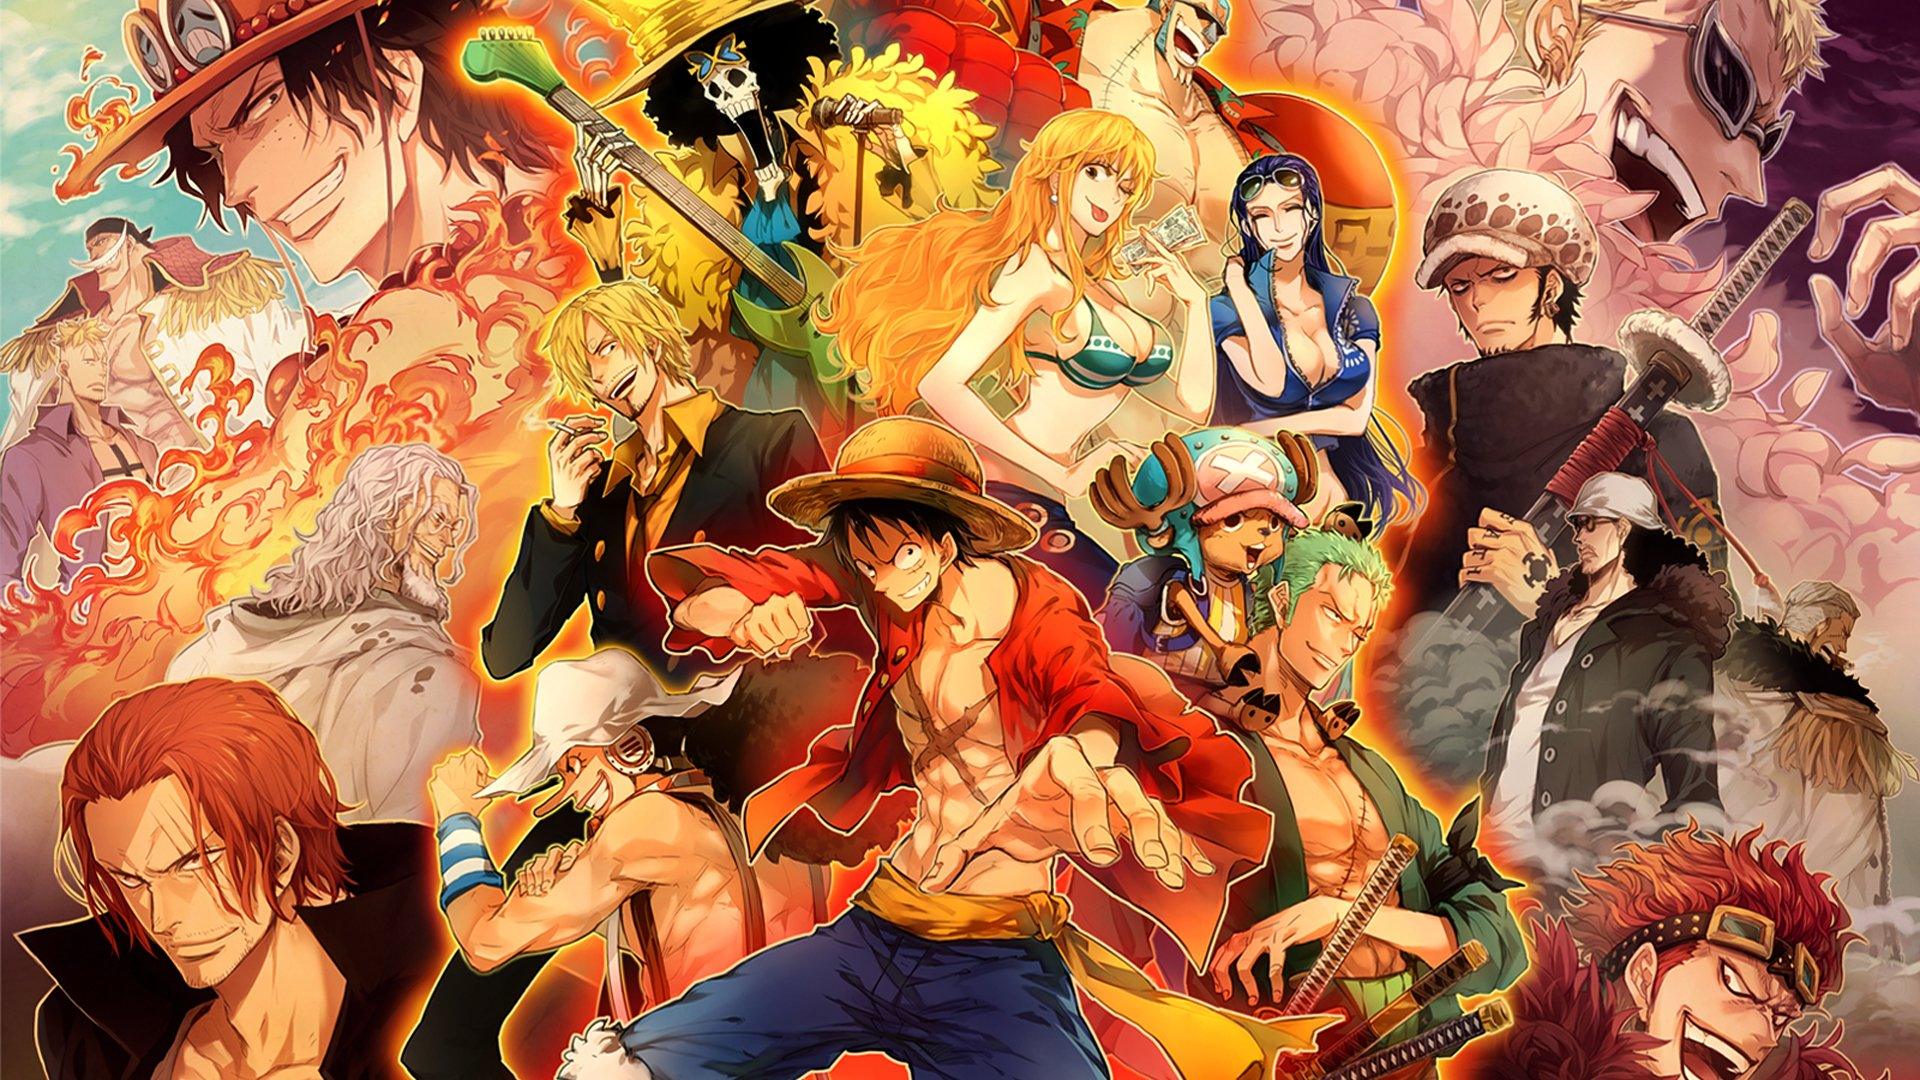 动漫 - 海贼王  Shanks (One Piece) Edward Newgate Portgas D. Ace Donquixote Doflamingo Trafalgar Law Usopp (One Piece) Monkey D. Luffy Zoro Roronoa Tony Tony Chopper Sanji (One Piece) Nico Robin Nami (One Piece) Brook (One Piece) Franky (One Piece) 壁纸